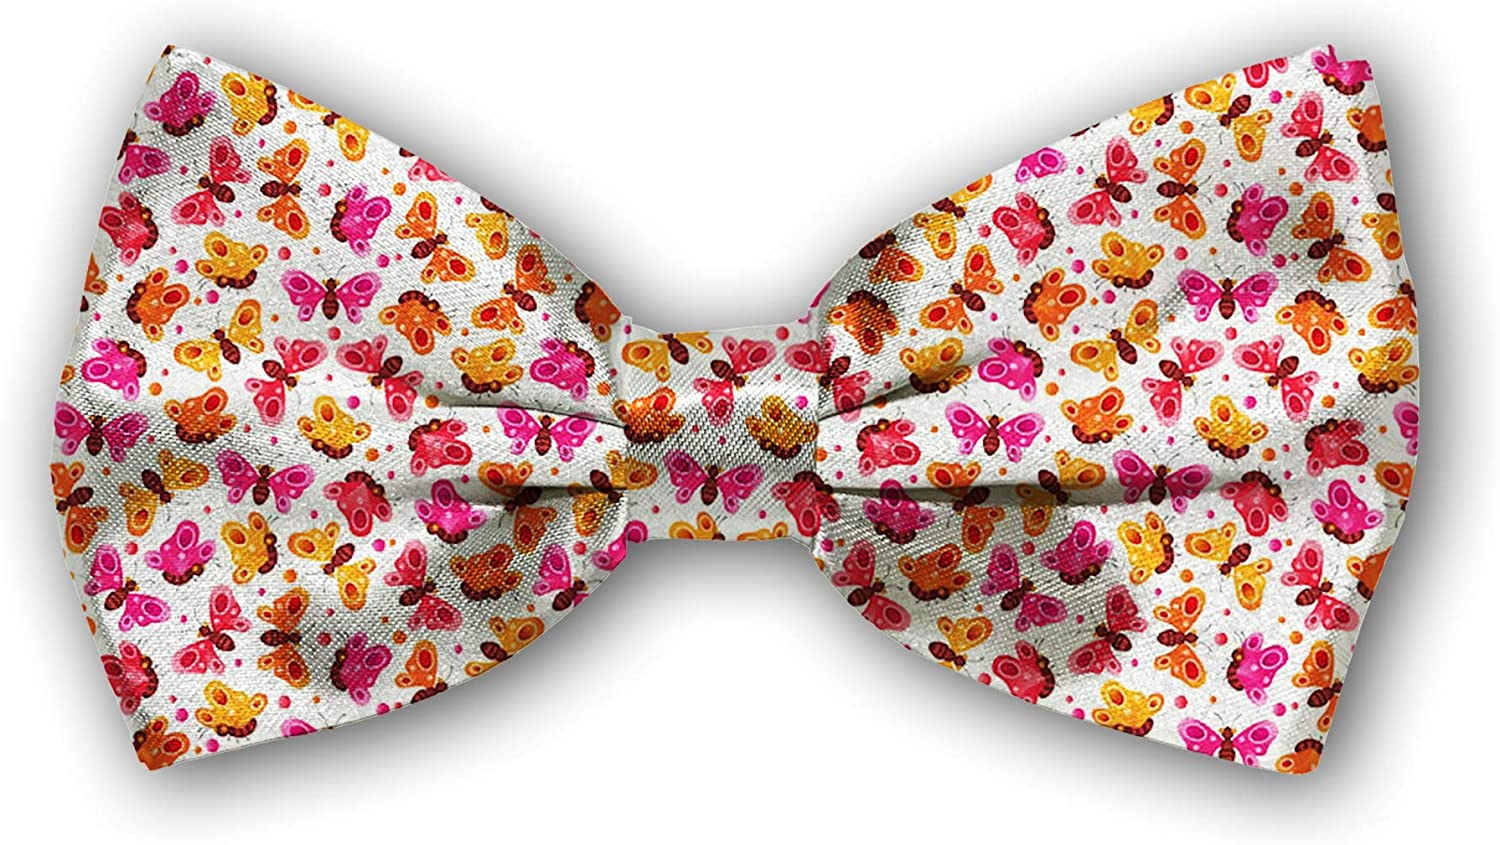 Bow Tie Tuxedo OFFicial store Butterfly Cotton for Adjustable Mens Boys Ranking TOP1 Bowtie